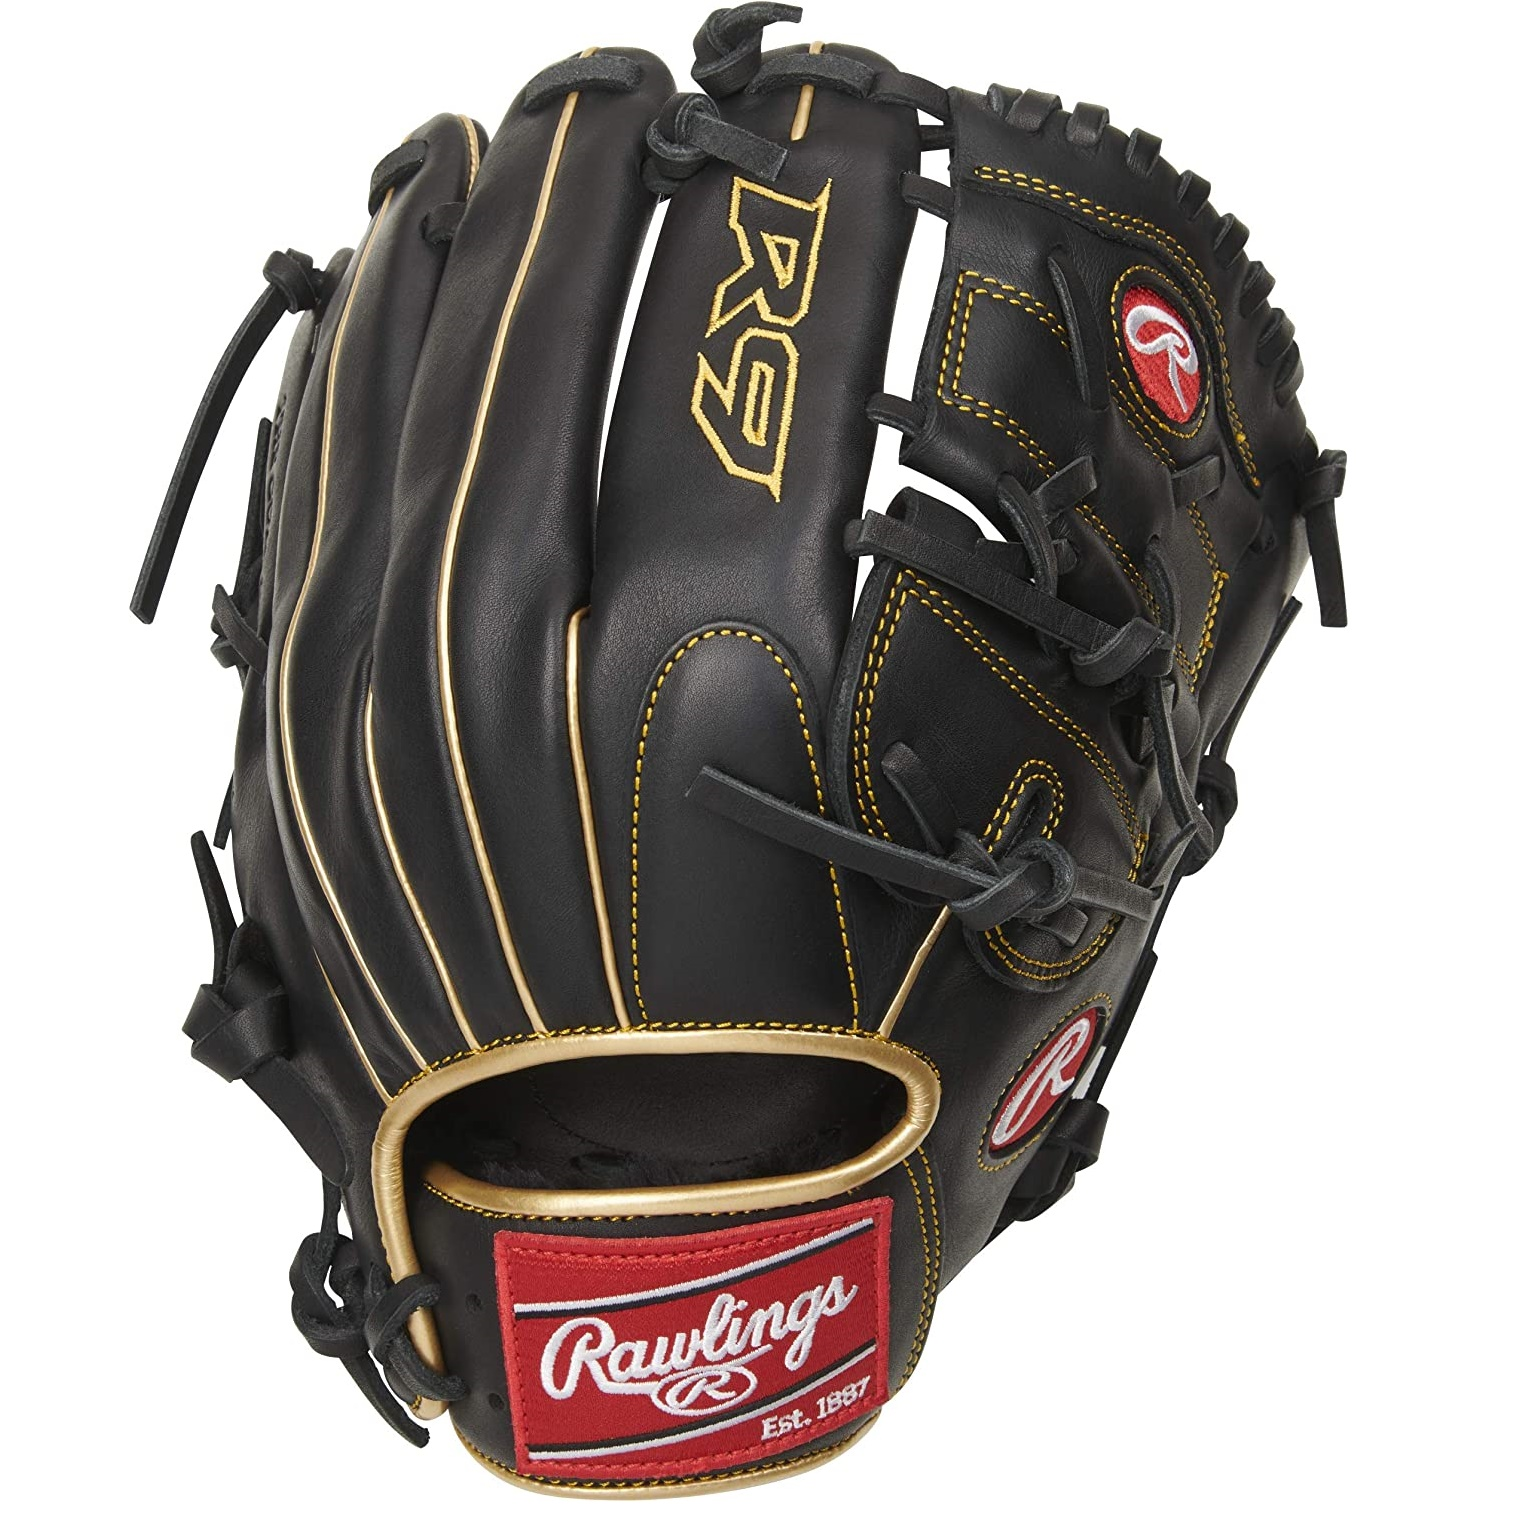 rawlings-r9-baseball-glove-12-inch-right-hand-throw R9206-9BG-RightHandThrow Rawlings  Gear up with the 2021 R9 Series 12-inch infield/pitchers glove. It